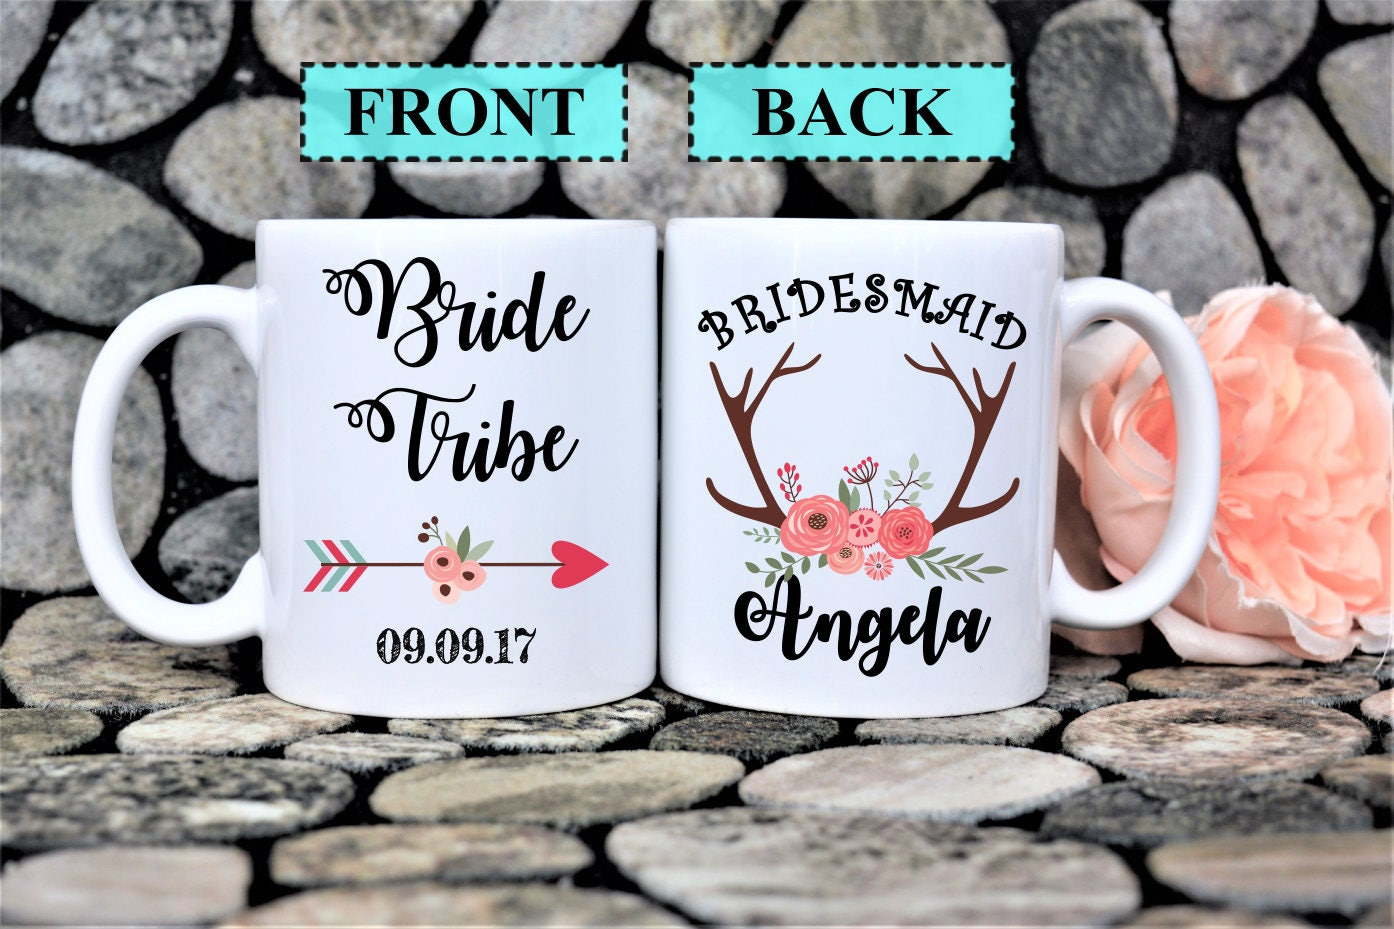 Bridesmaid Mugbridal Gift Ideawedding Planning Muggift For Maid